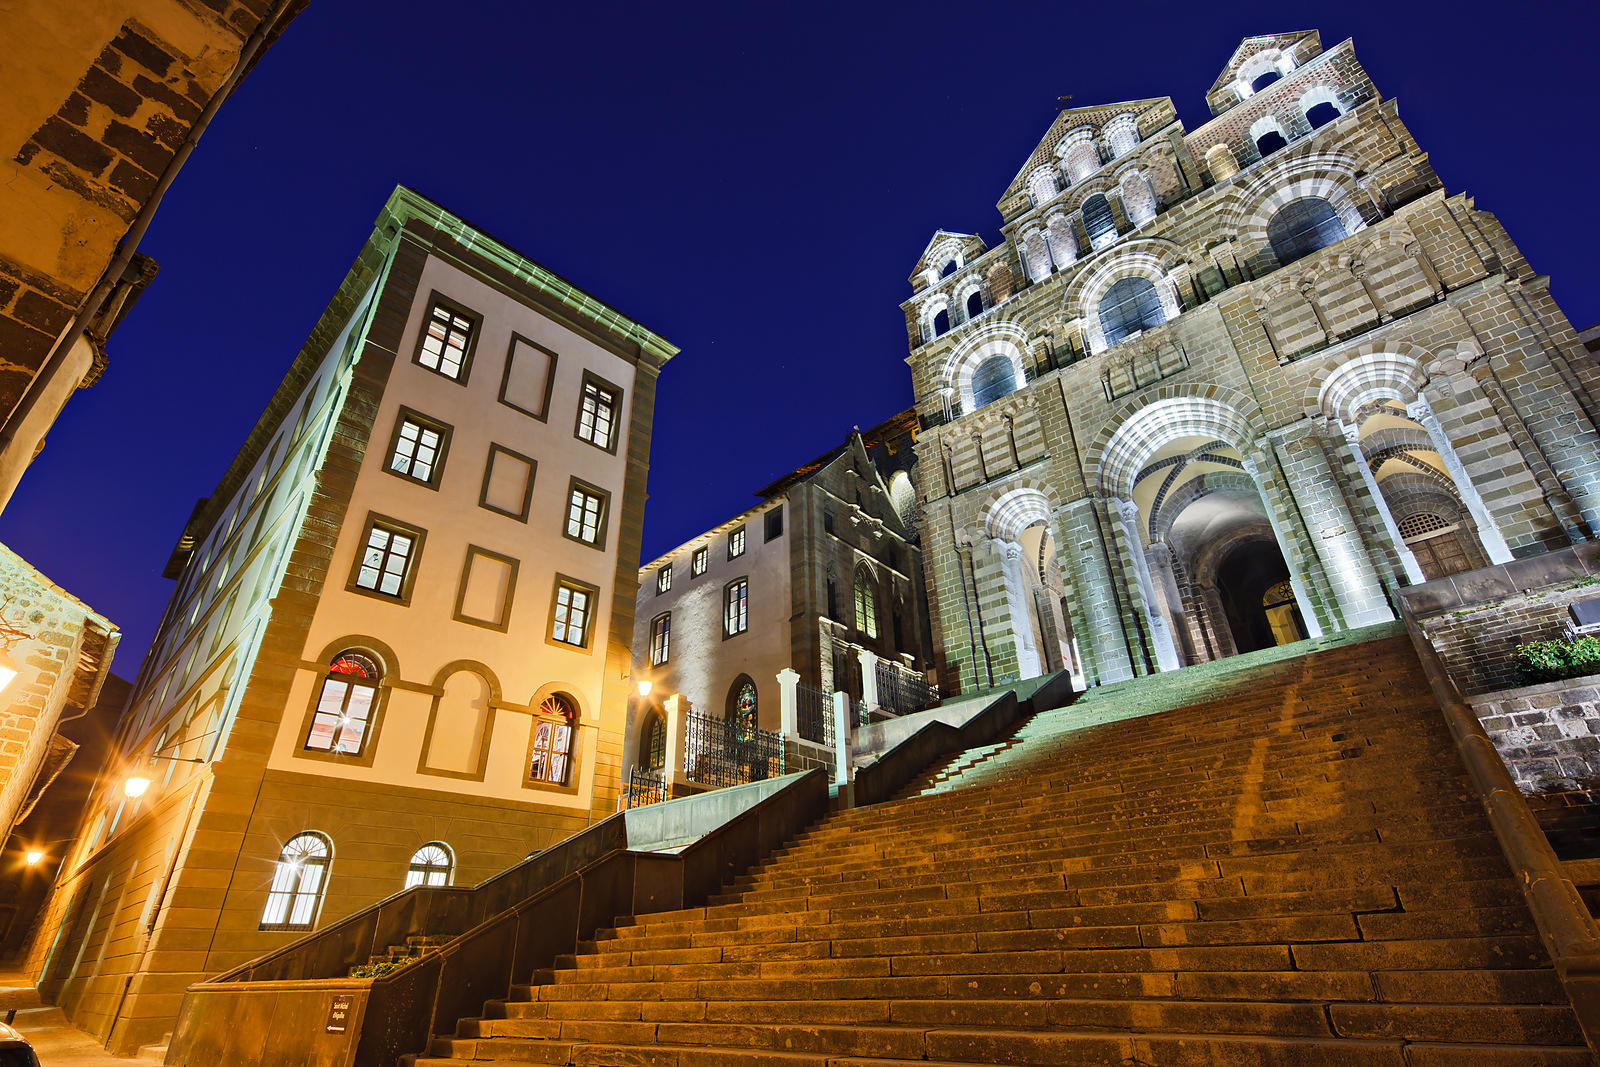 Facade and stairs of Le Puy en Velay cathedral in the twilight